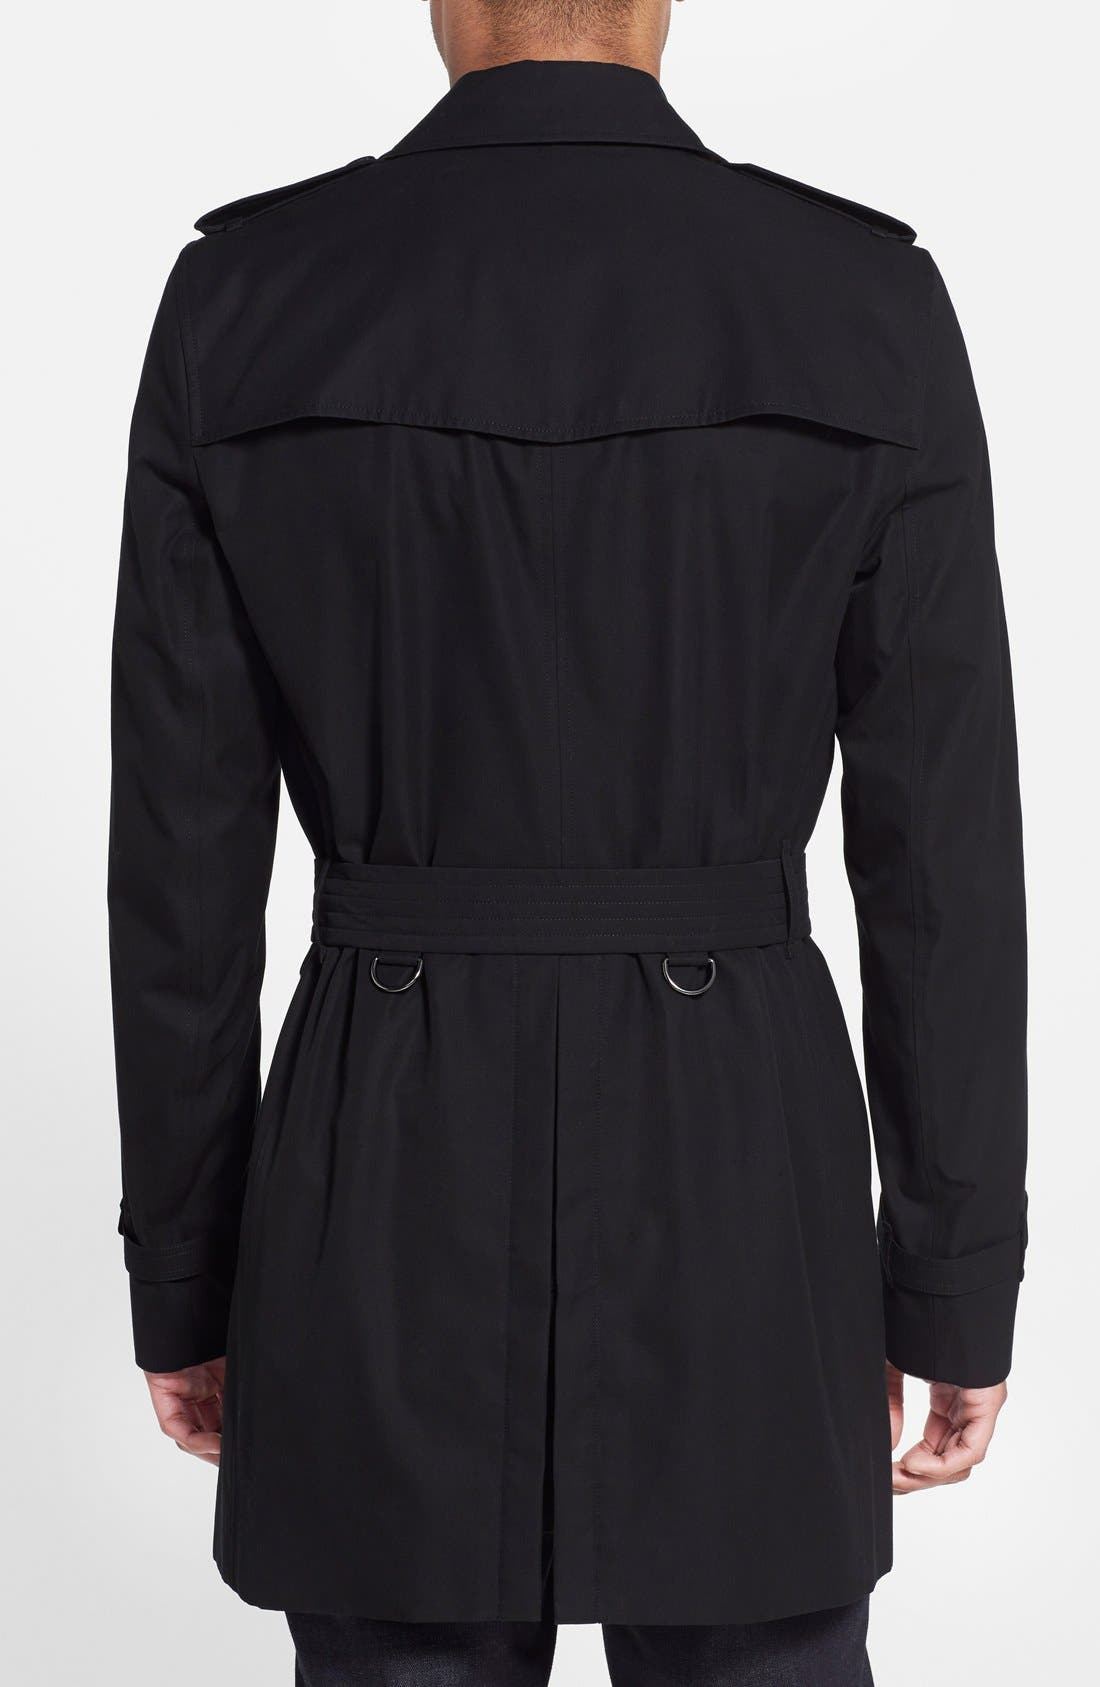 Kensington Double Breasted Trench Coat,                             Alternate thumbnail 3, color,                             BLACK-NEW